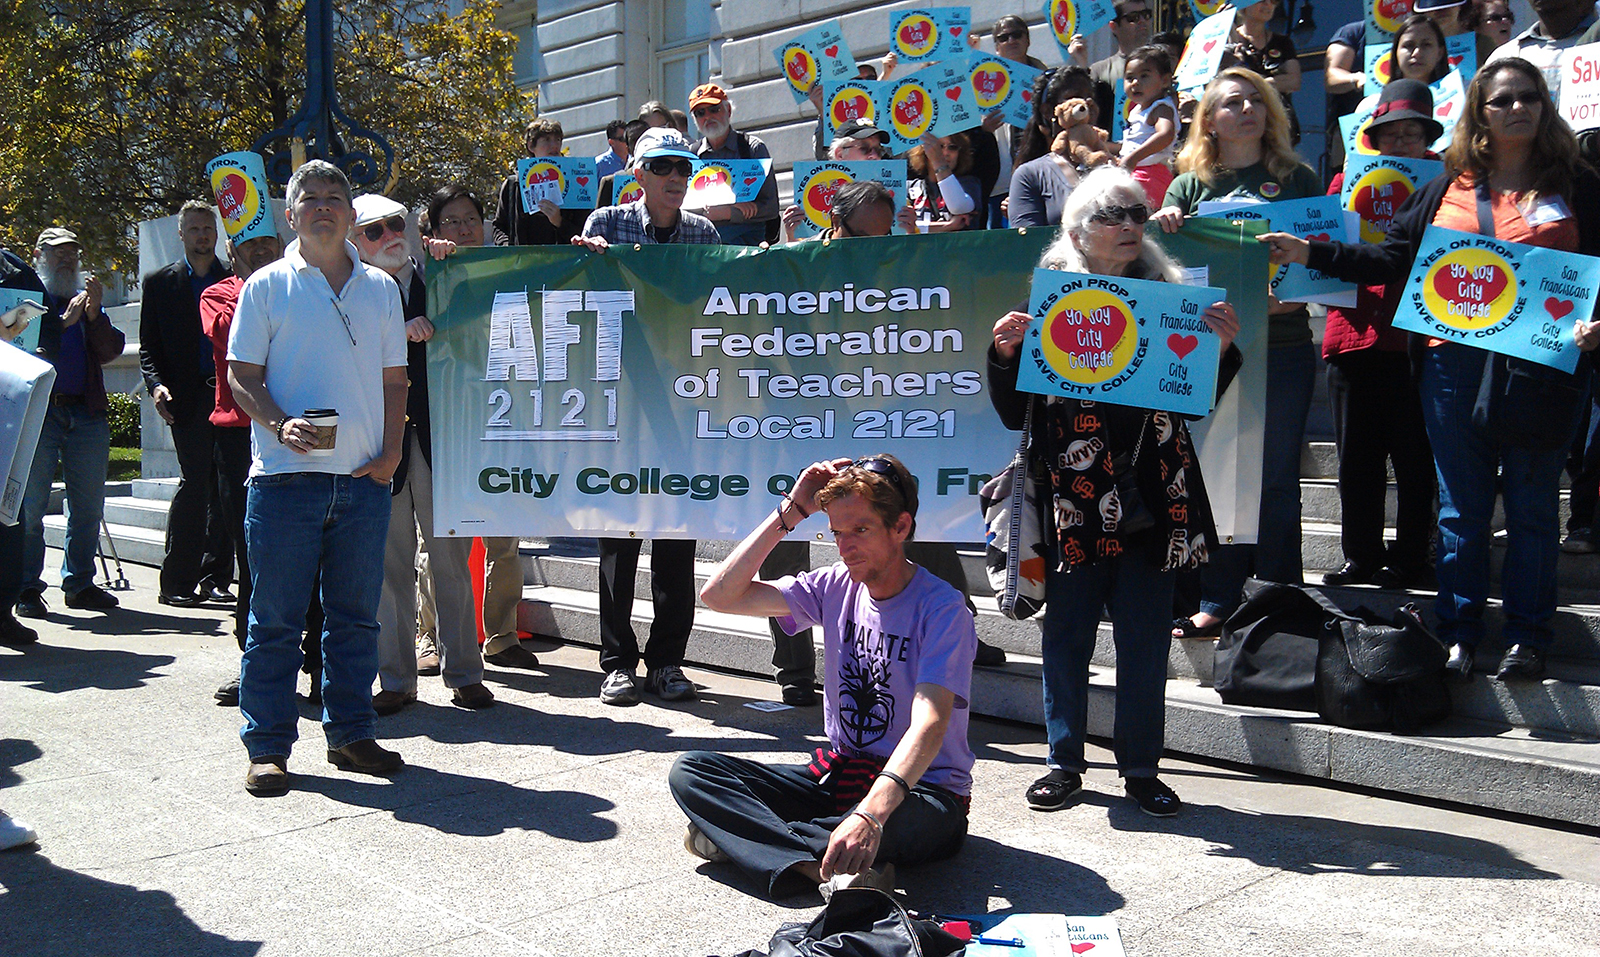 Mission Residents Fight for City College